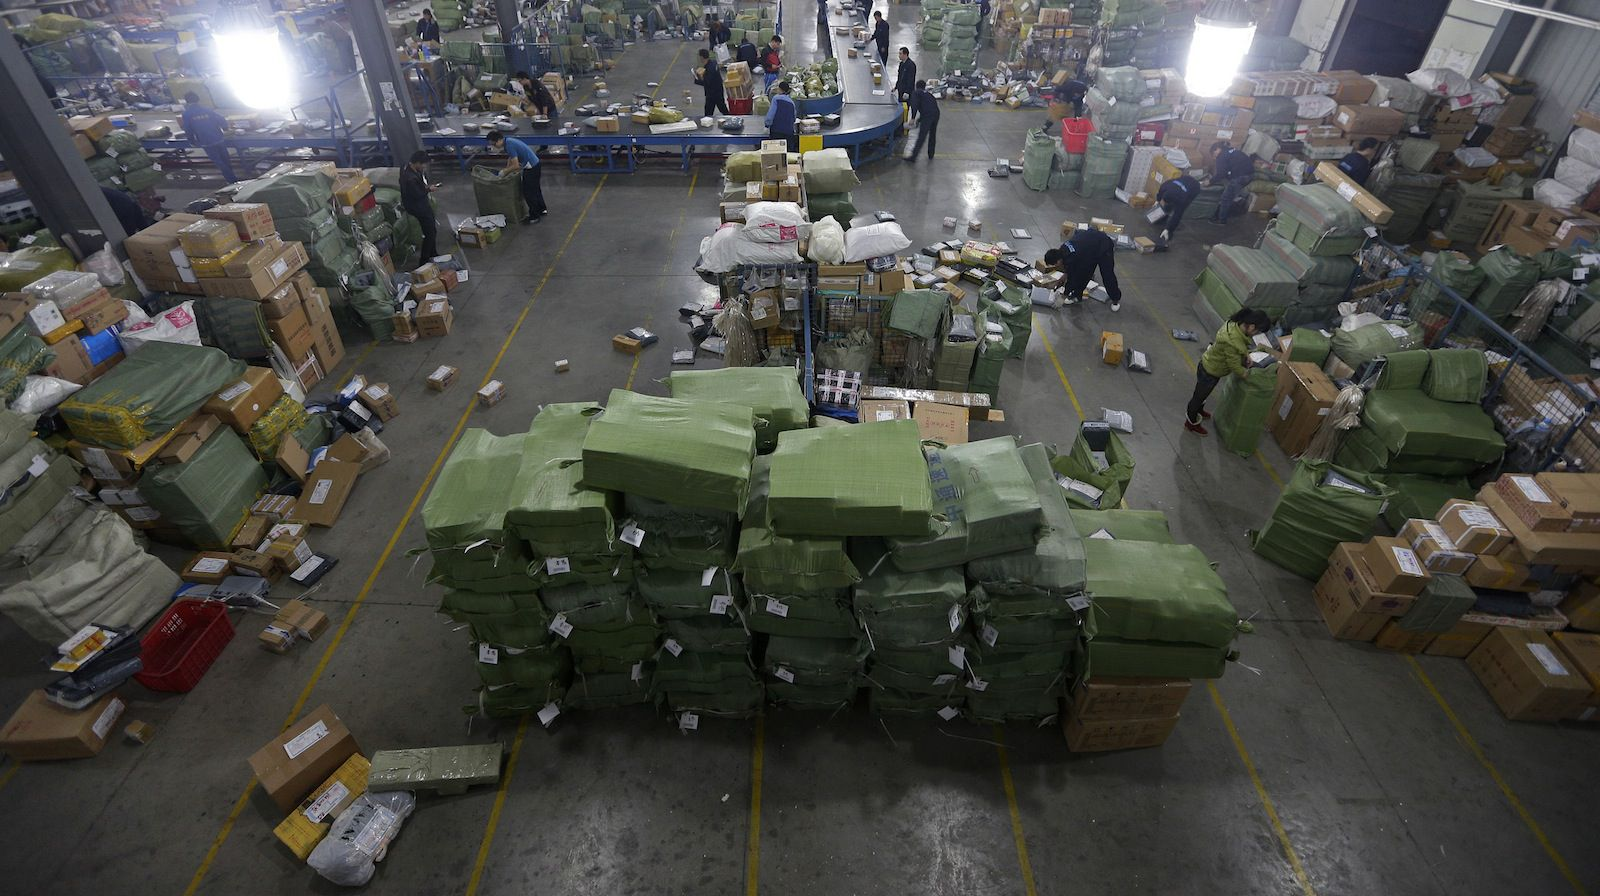 """A general view shows employees sorting packages along a conveyor belt at a hub of ZTO Express Delivery company in Wuhan, Hubei province November 12, 2012. According to China's delivery industry association, more than 800,000 employees of Chinese delivery companies were expected to be working for the """"Single's Day"""" online shopping promotion on Sunday led by Taobao.com, the country's biggest online purchase website. Alibaba, owner of Taobao, announced on Monday that the company cashed in 19.1 billion yuan (3.04 billion USD) during the promotion, Xinhua News Agency reported. Picture taken November 12, 2012. REUTERS/Stringer (CHINA - Tags: BUSINESS SOCIETY EMPLOYMENT) CHINA OUT. NO COMMERCIAL OR EDITORIAL SALES IN CHINA - RTR3AC1Y"""